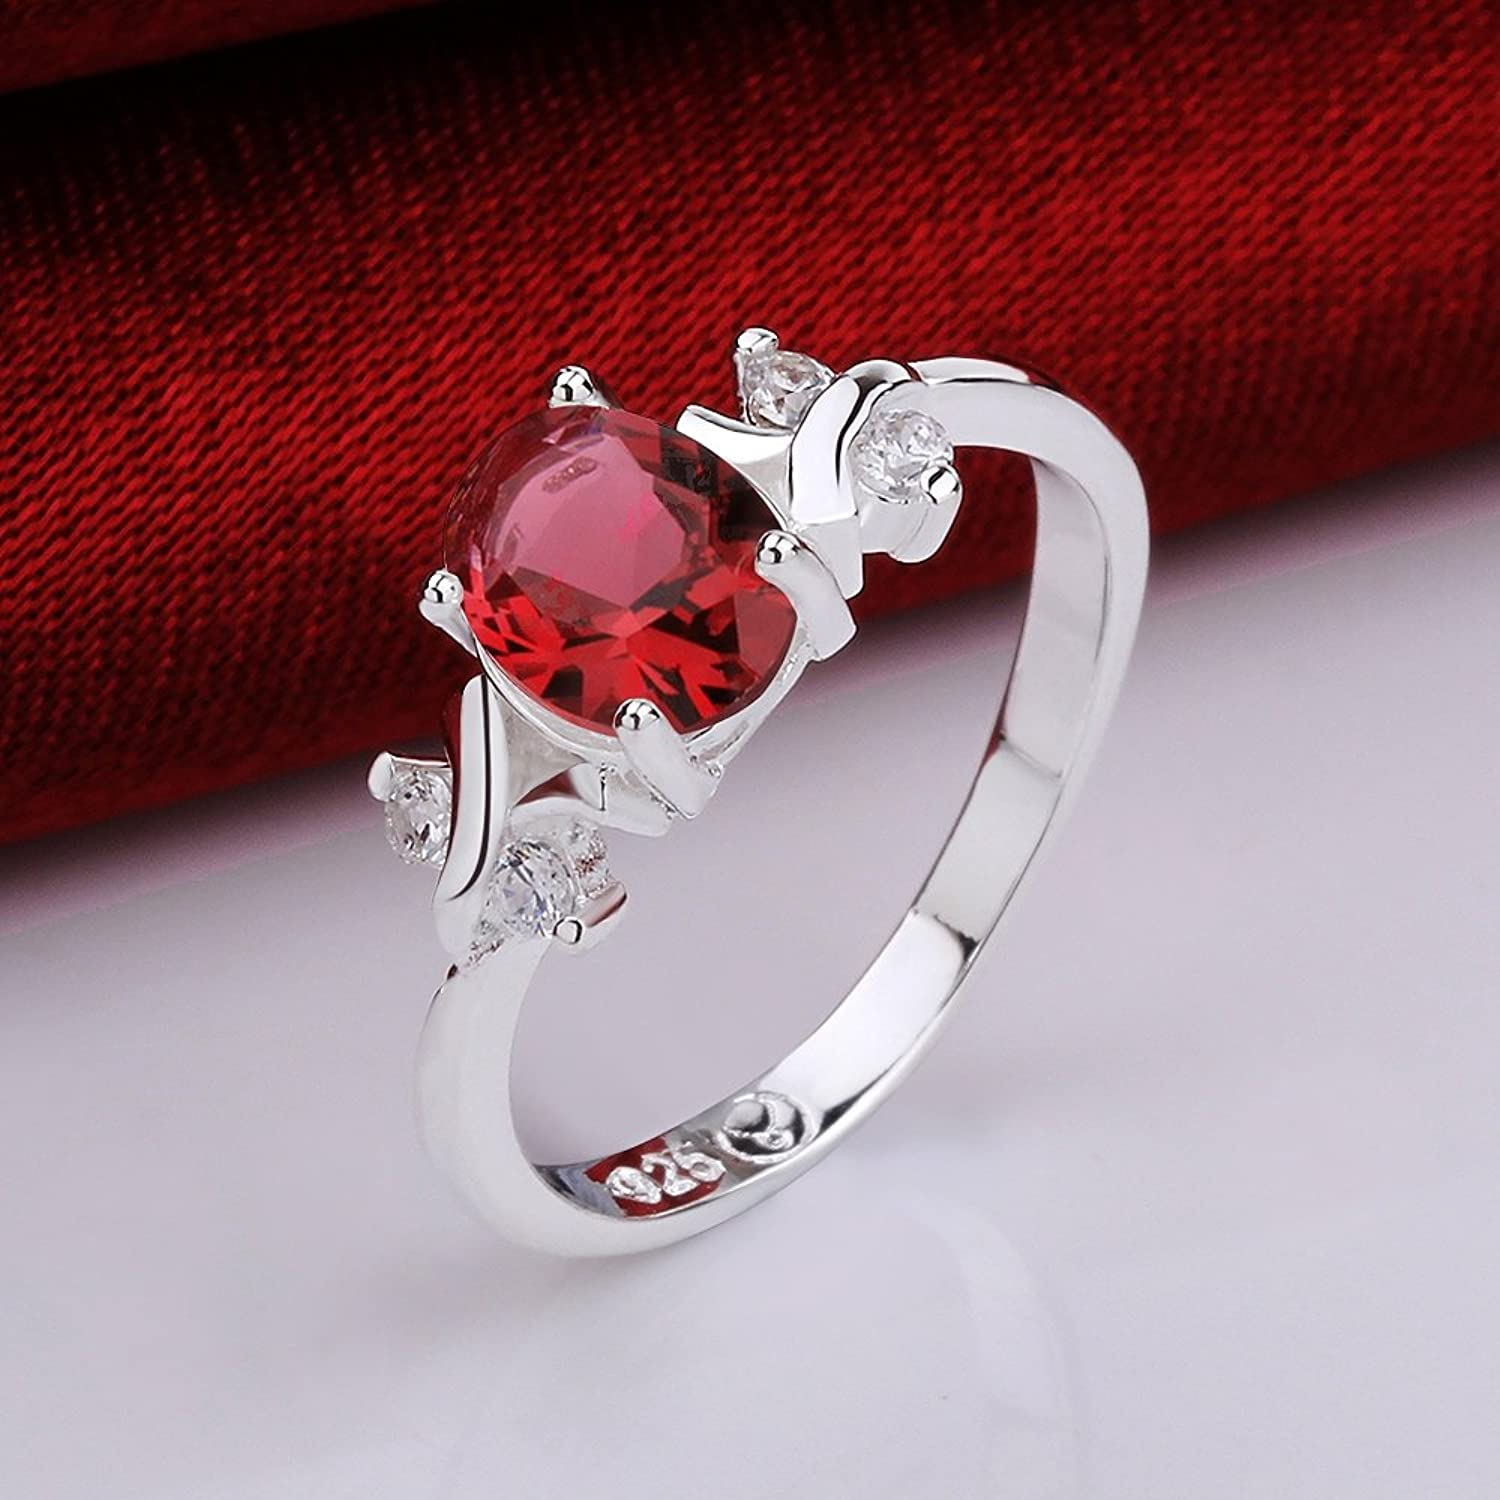 stone deep oval red promise garnet rings cut natural fullxfull diamond band il ring engagement matching gem big gold rose